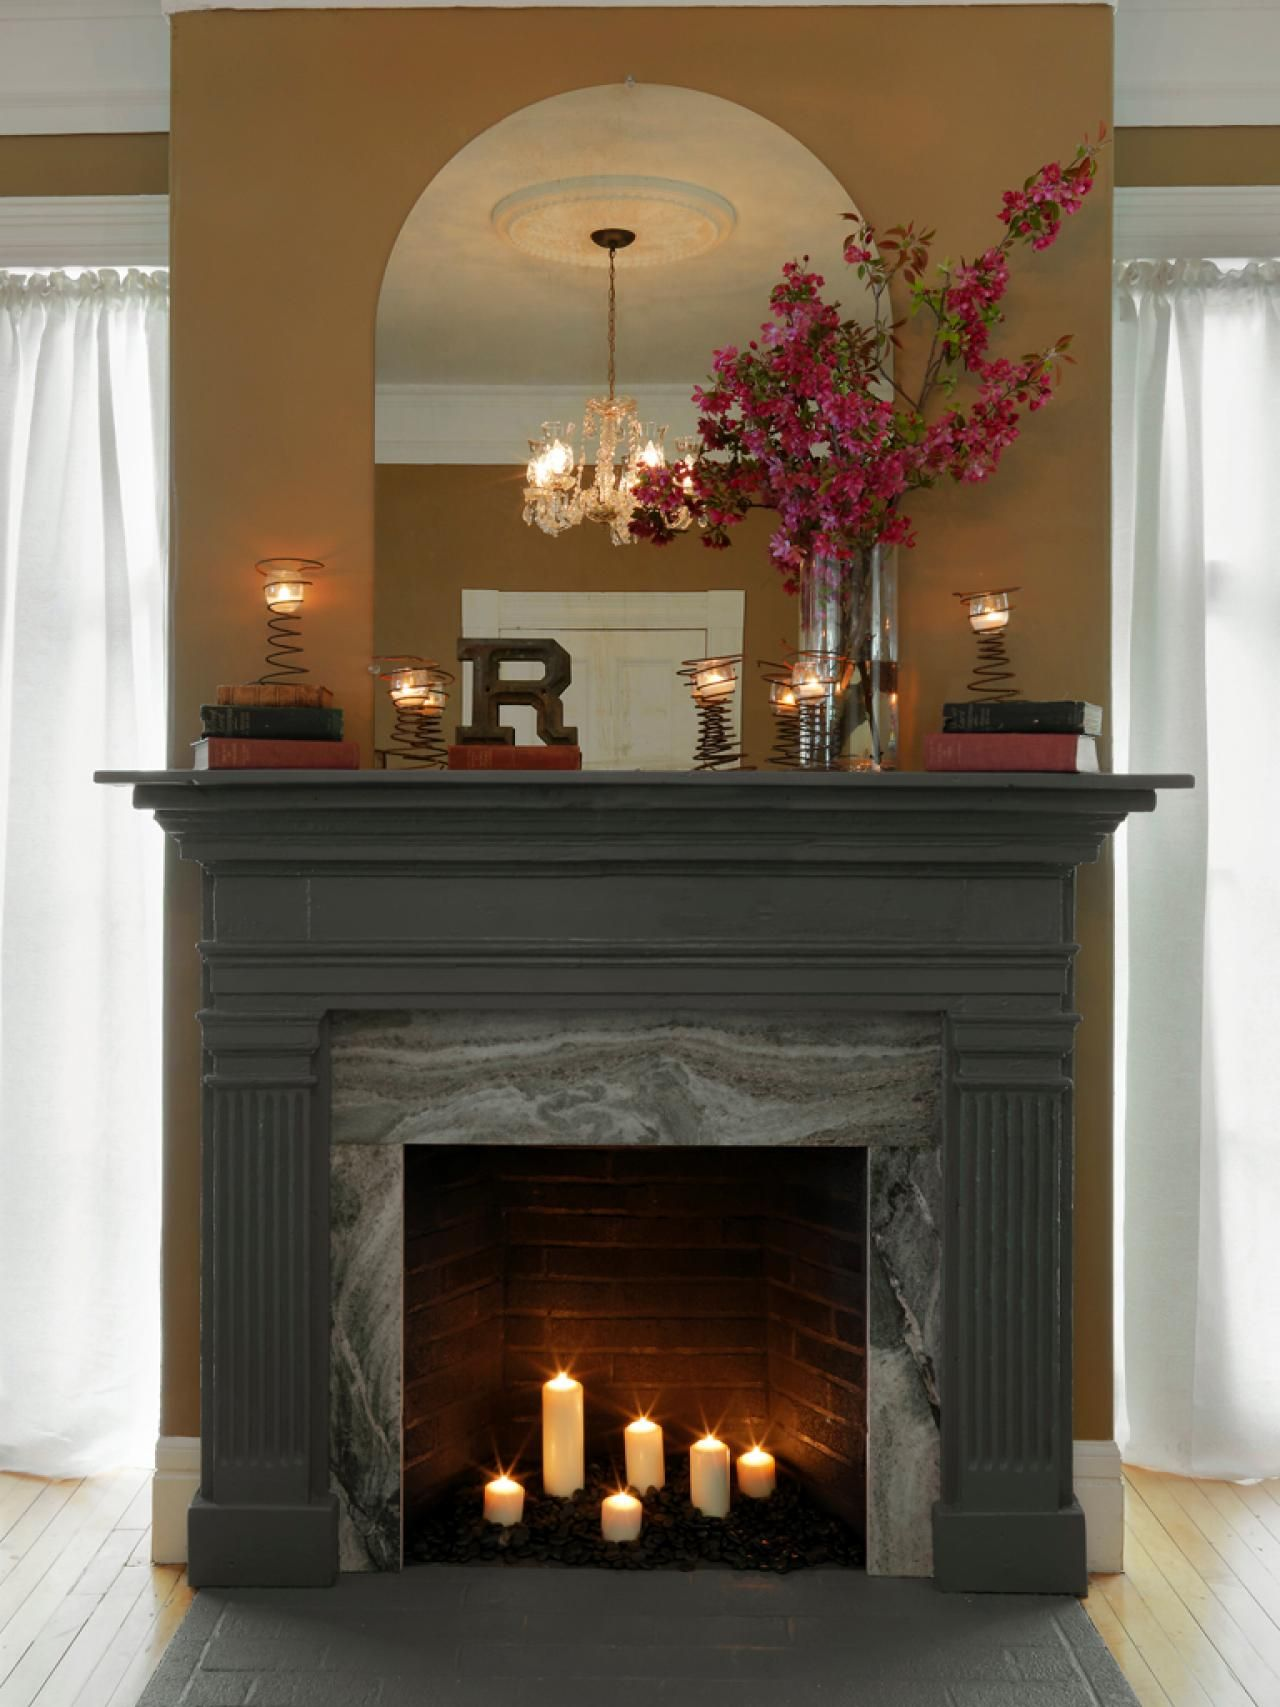 How to make a fireplace mantel using an old door frame granite